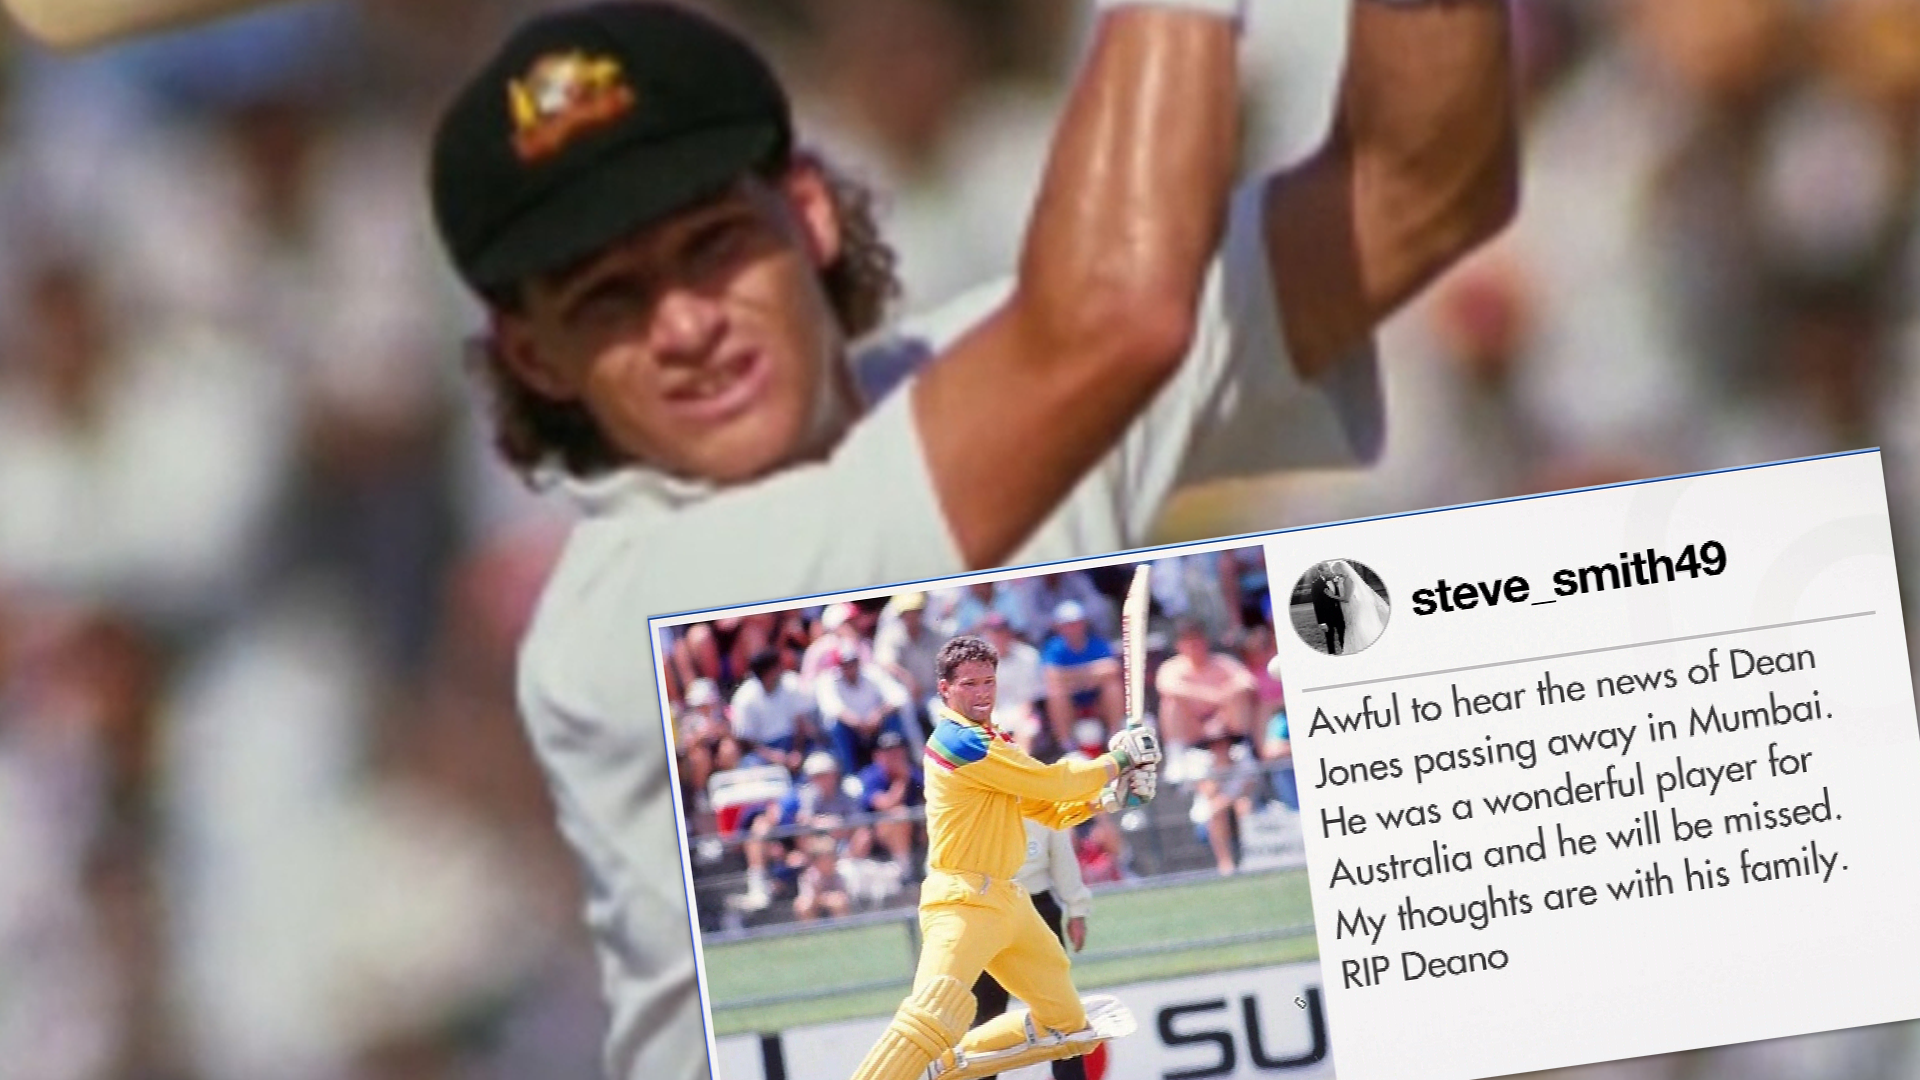 Dean Jones revived twice by Brett Lee in courageous attempt to save cricket legend